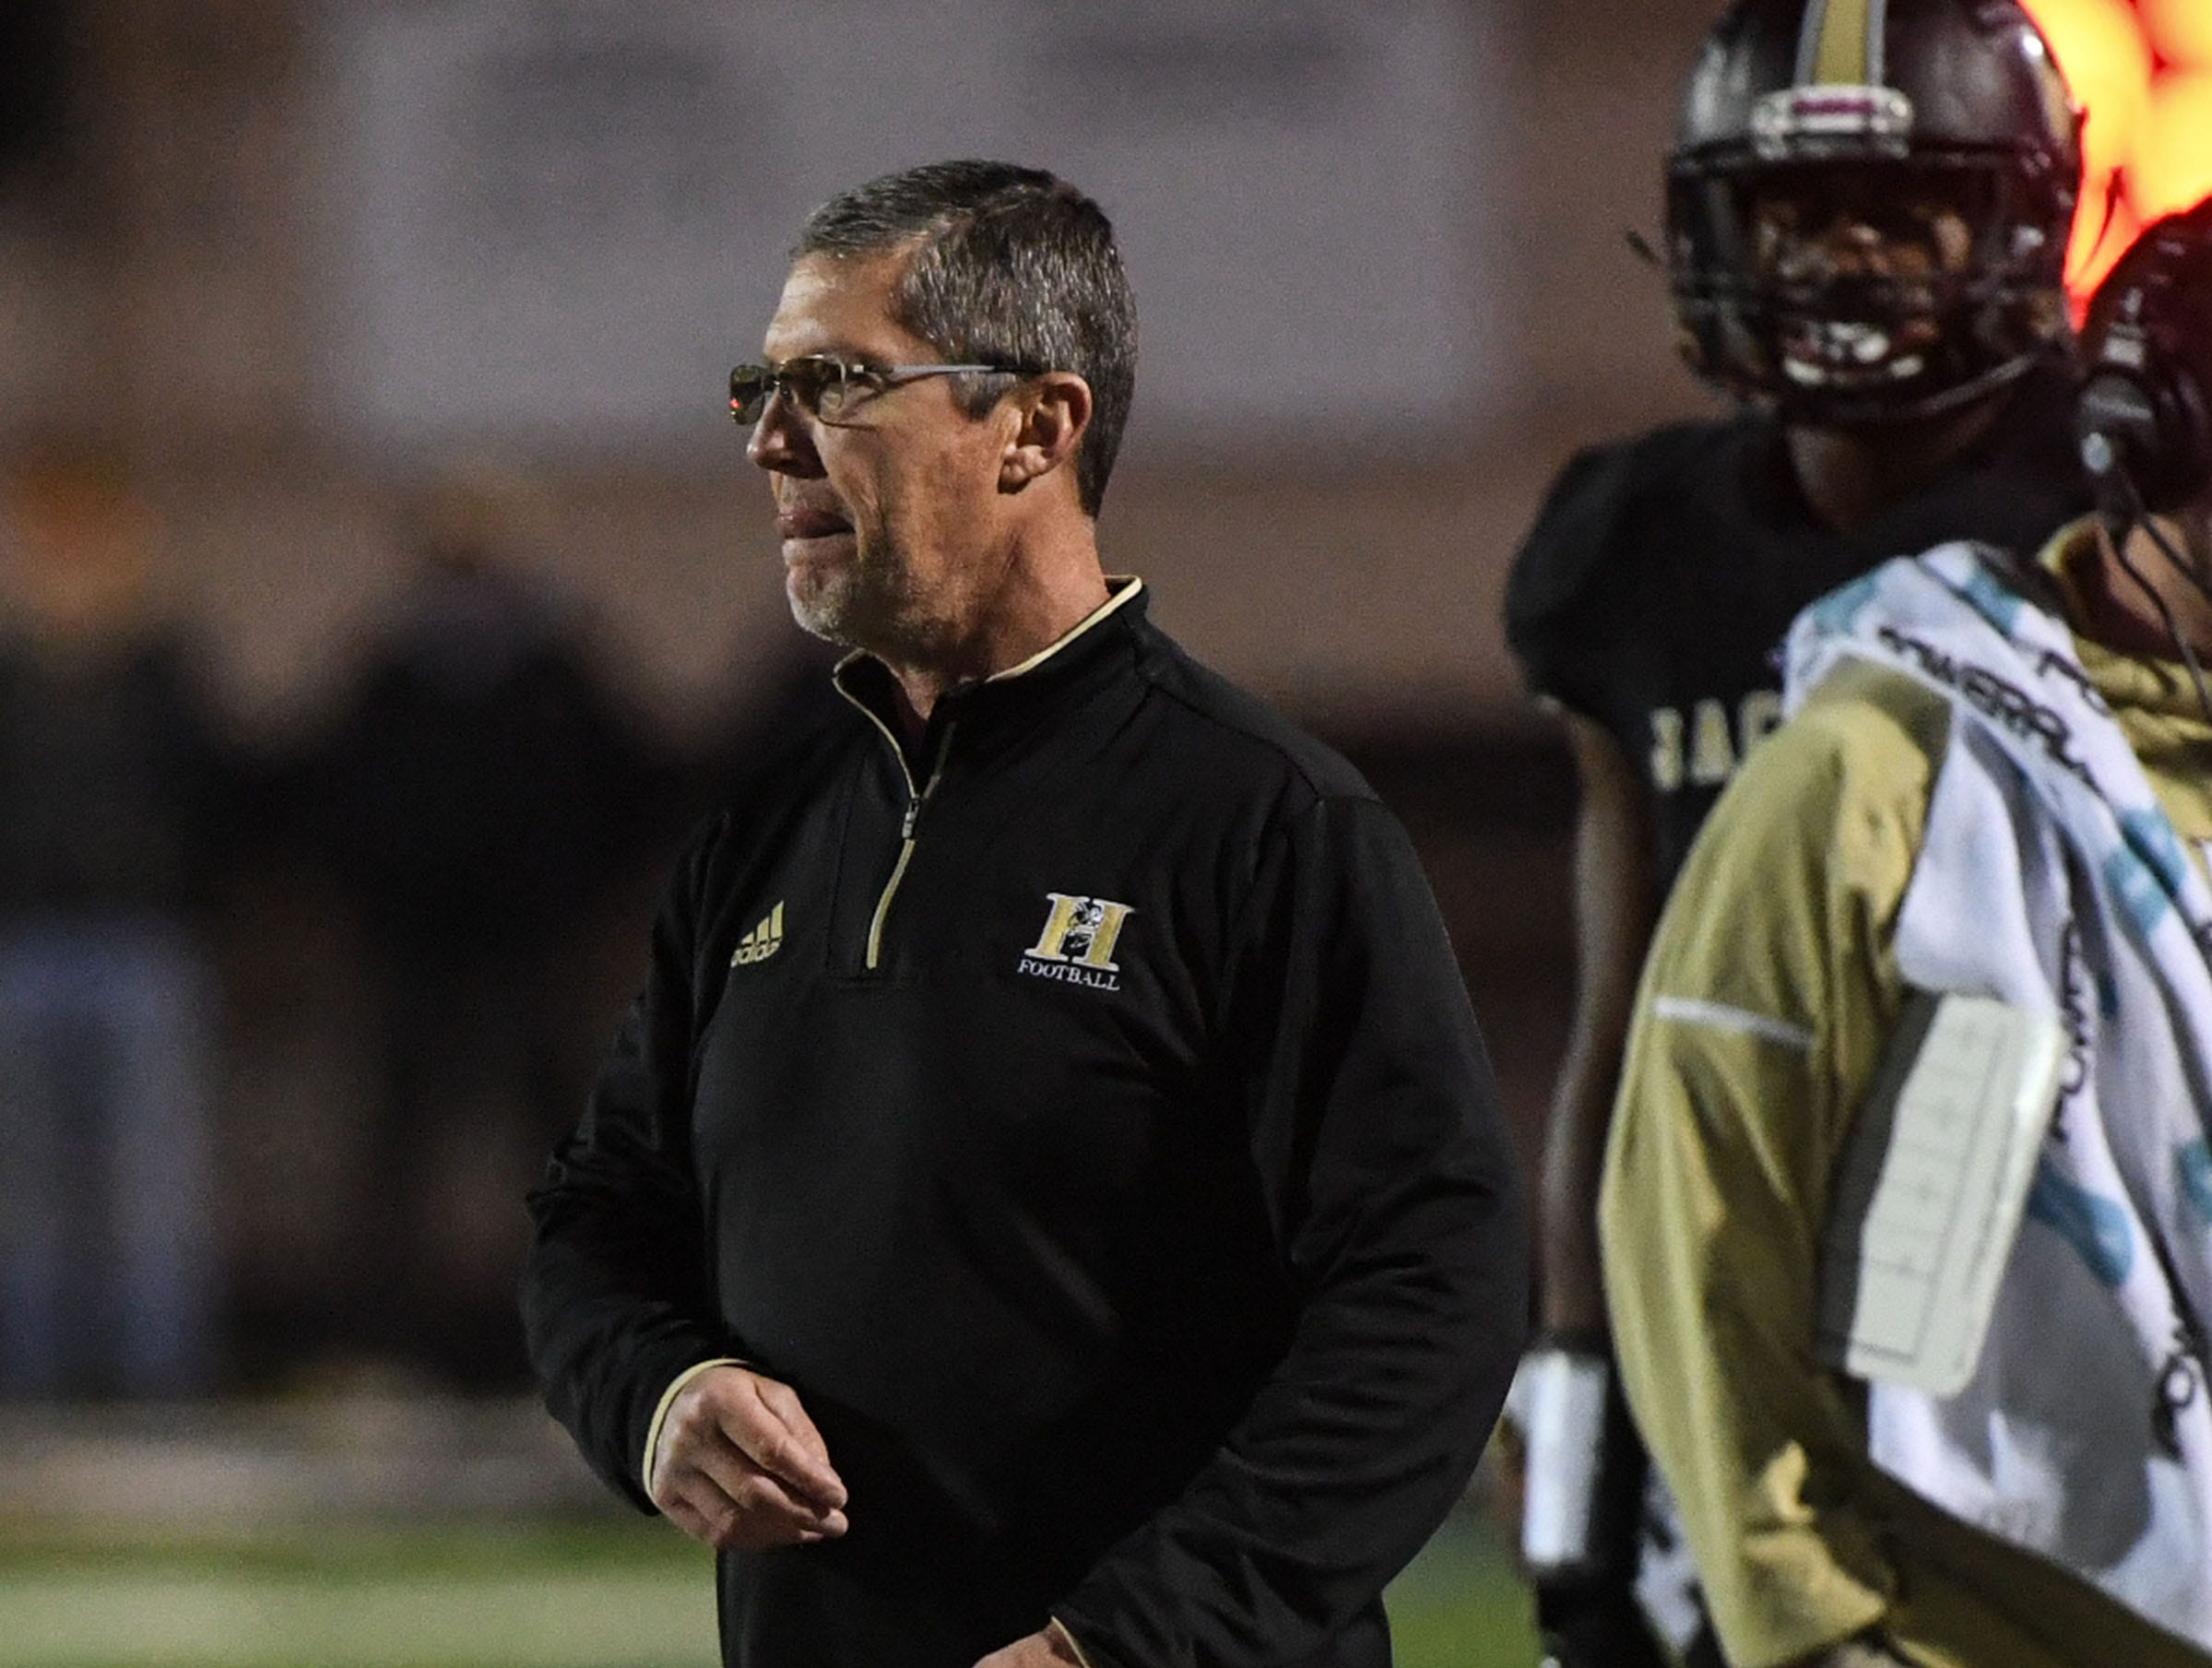 TL Hanna head coach Jeff Herron during the first quarter of the Class AAAAA state playoffs at TL Hanna High School in Anderson on Friday, November 30, 2018.